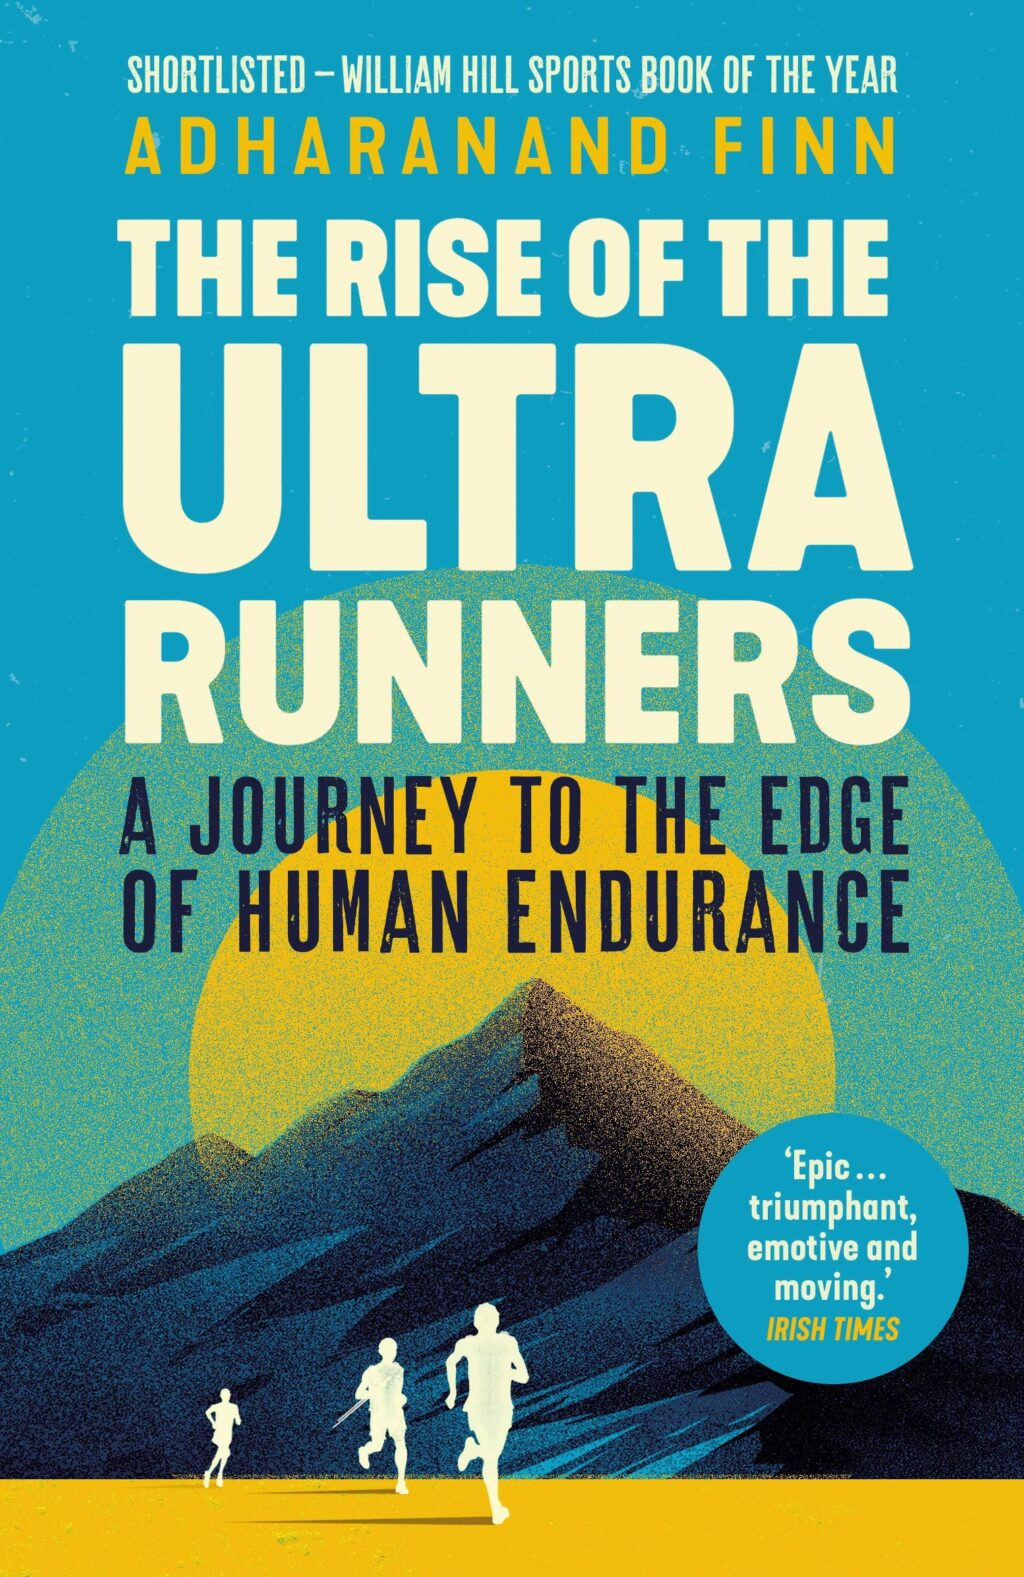 the-rise-of-the-ultra-runners-a-journey-to-the-edge-of-human-endurance